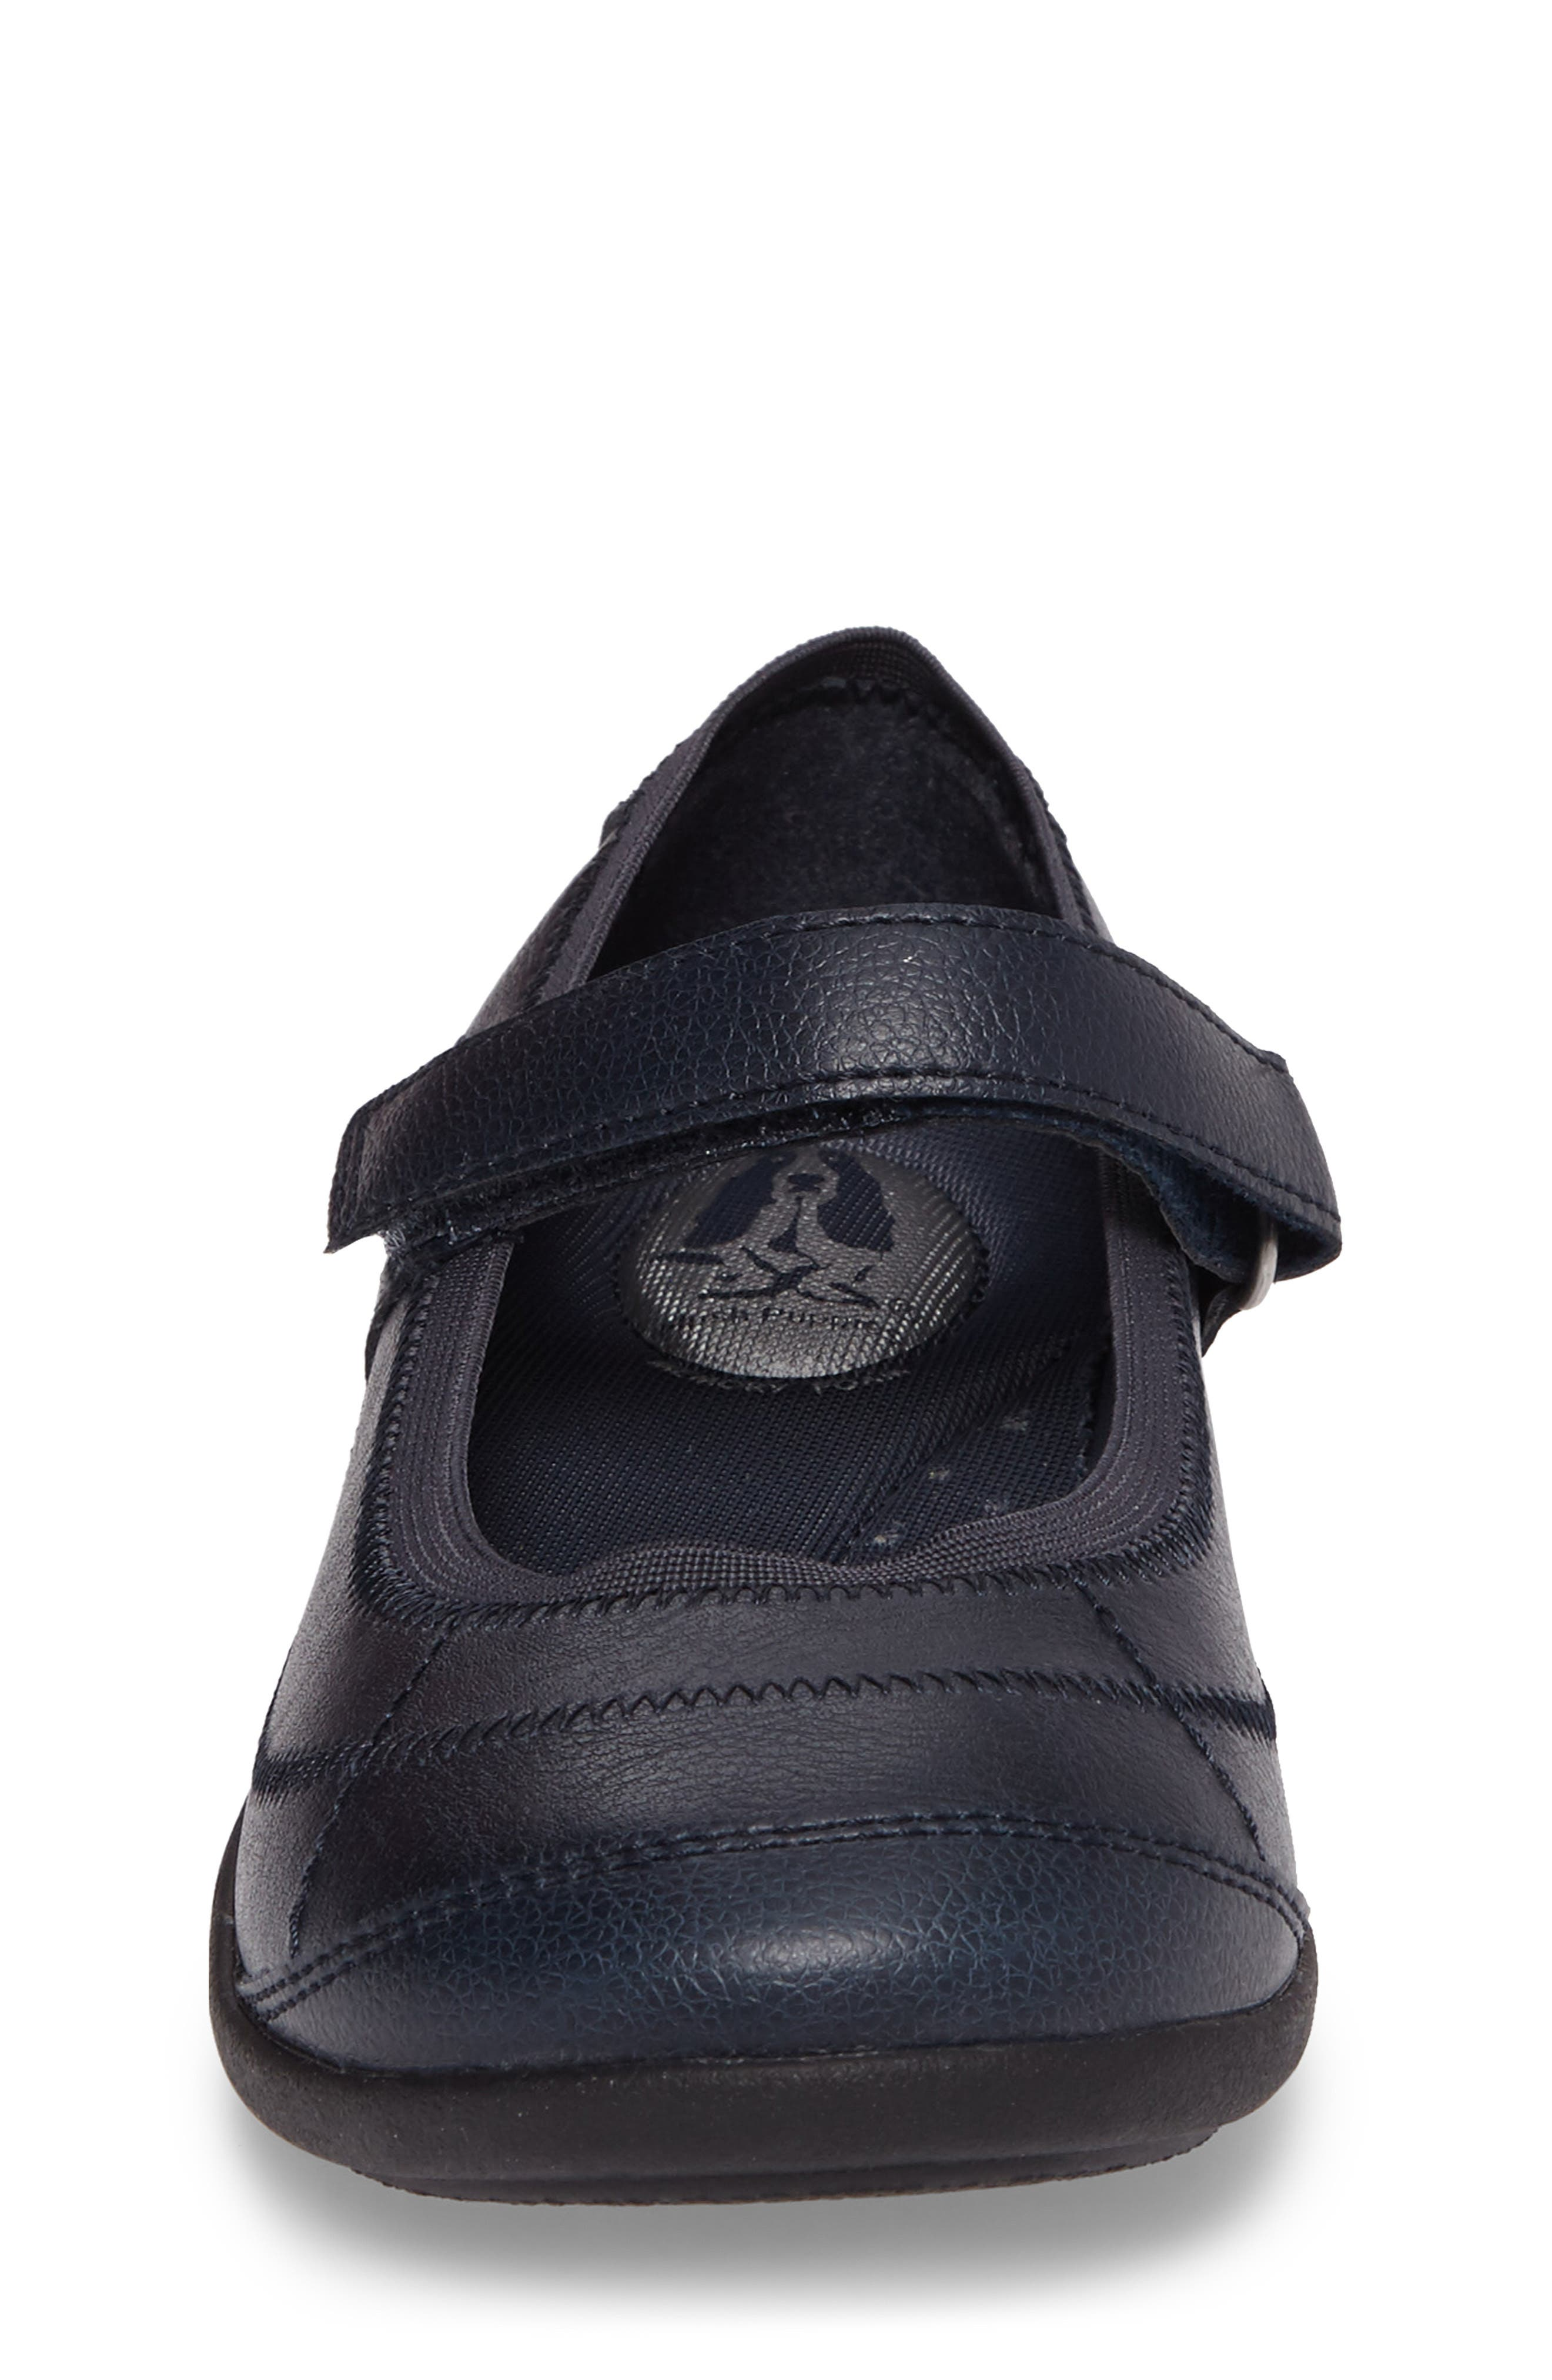 HUSH PUPPIES<SUP>®</SUP>, Reese Mary Jane Flat, Alternate thumbnail 4, color, NAVY LEATHER